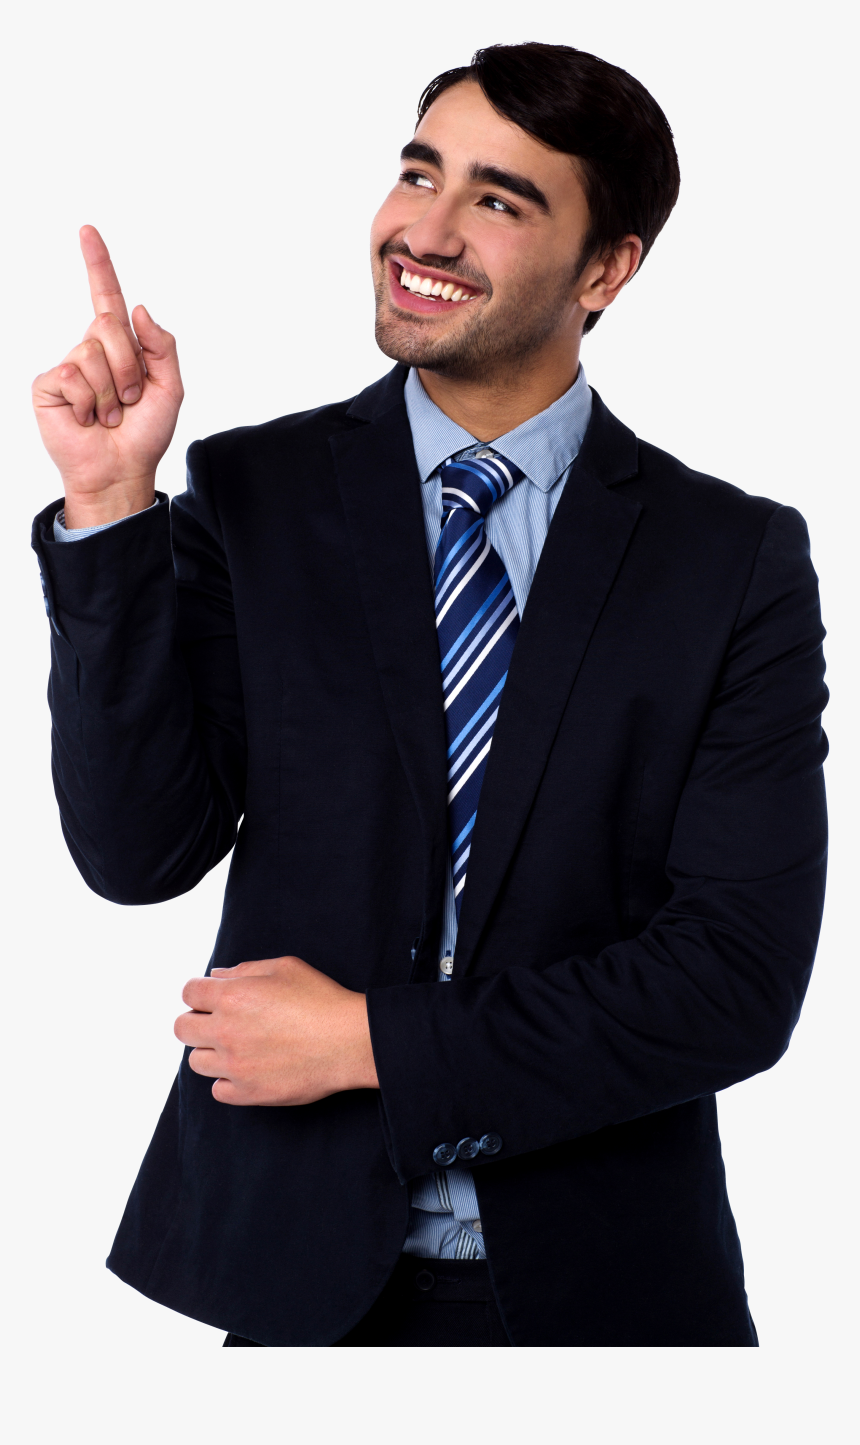 Men Pointing Left Png Background Image, Transparent Png, Free Download